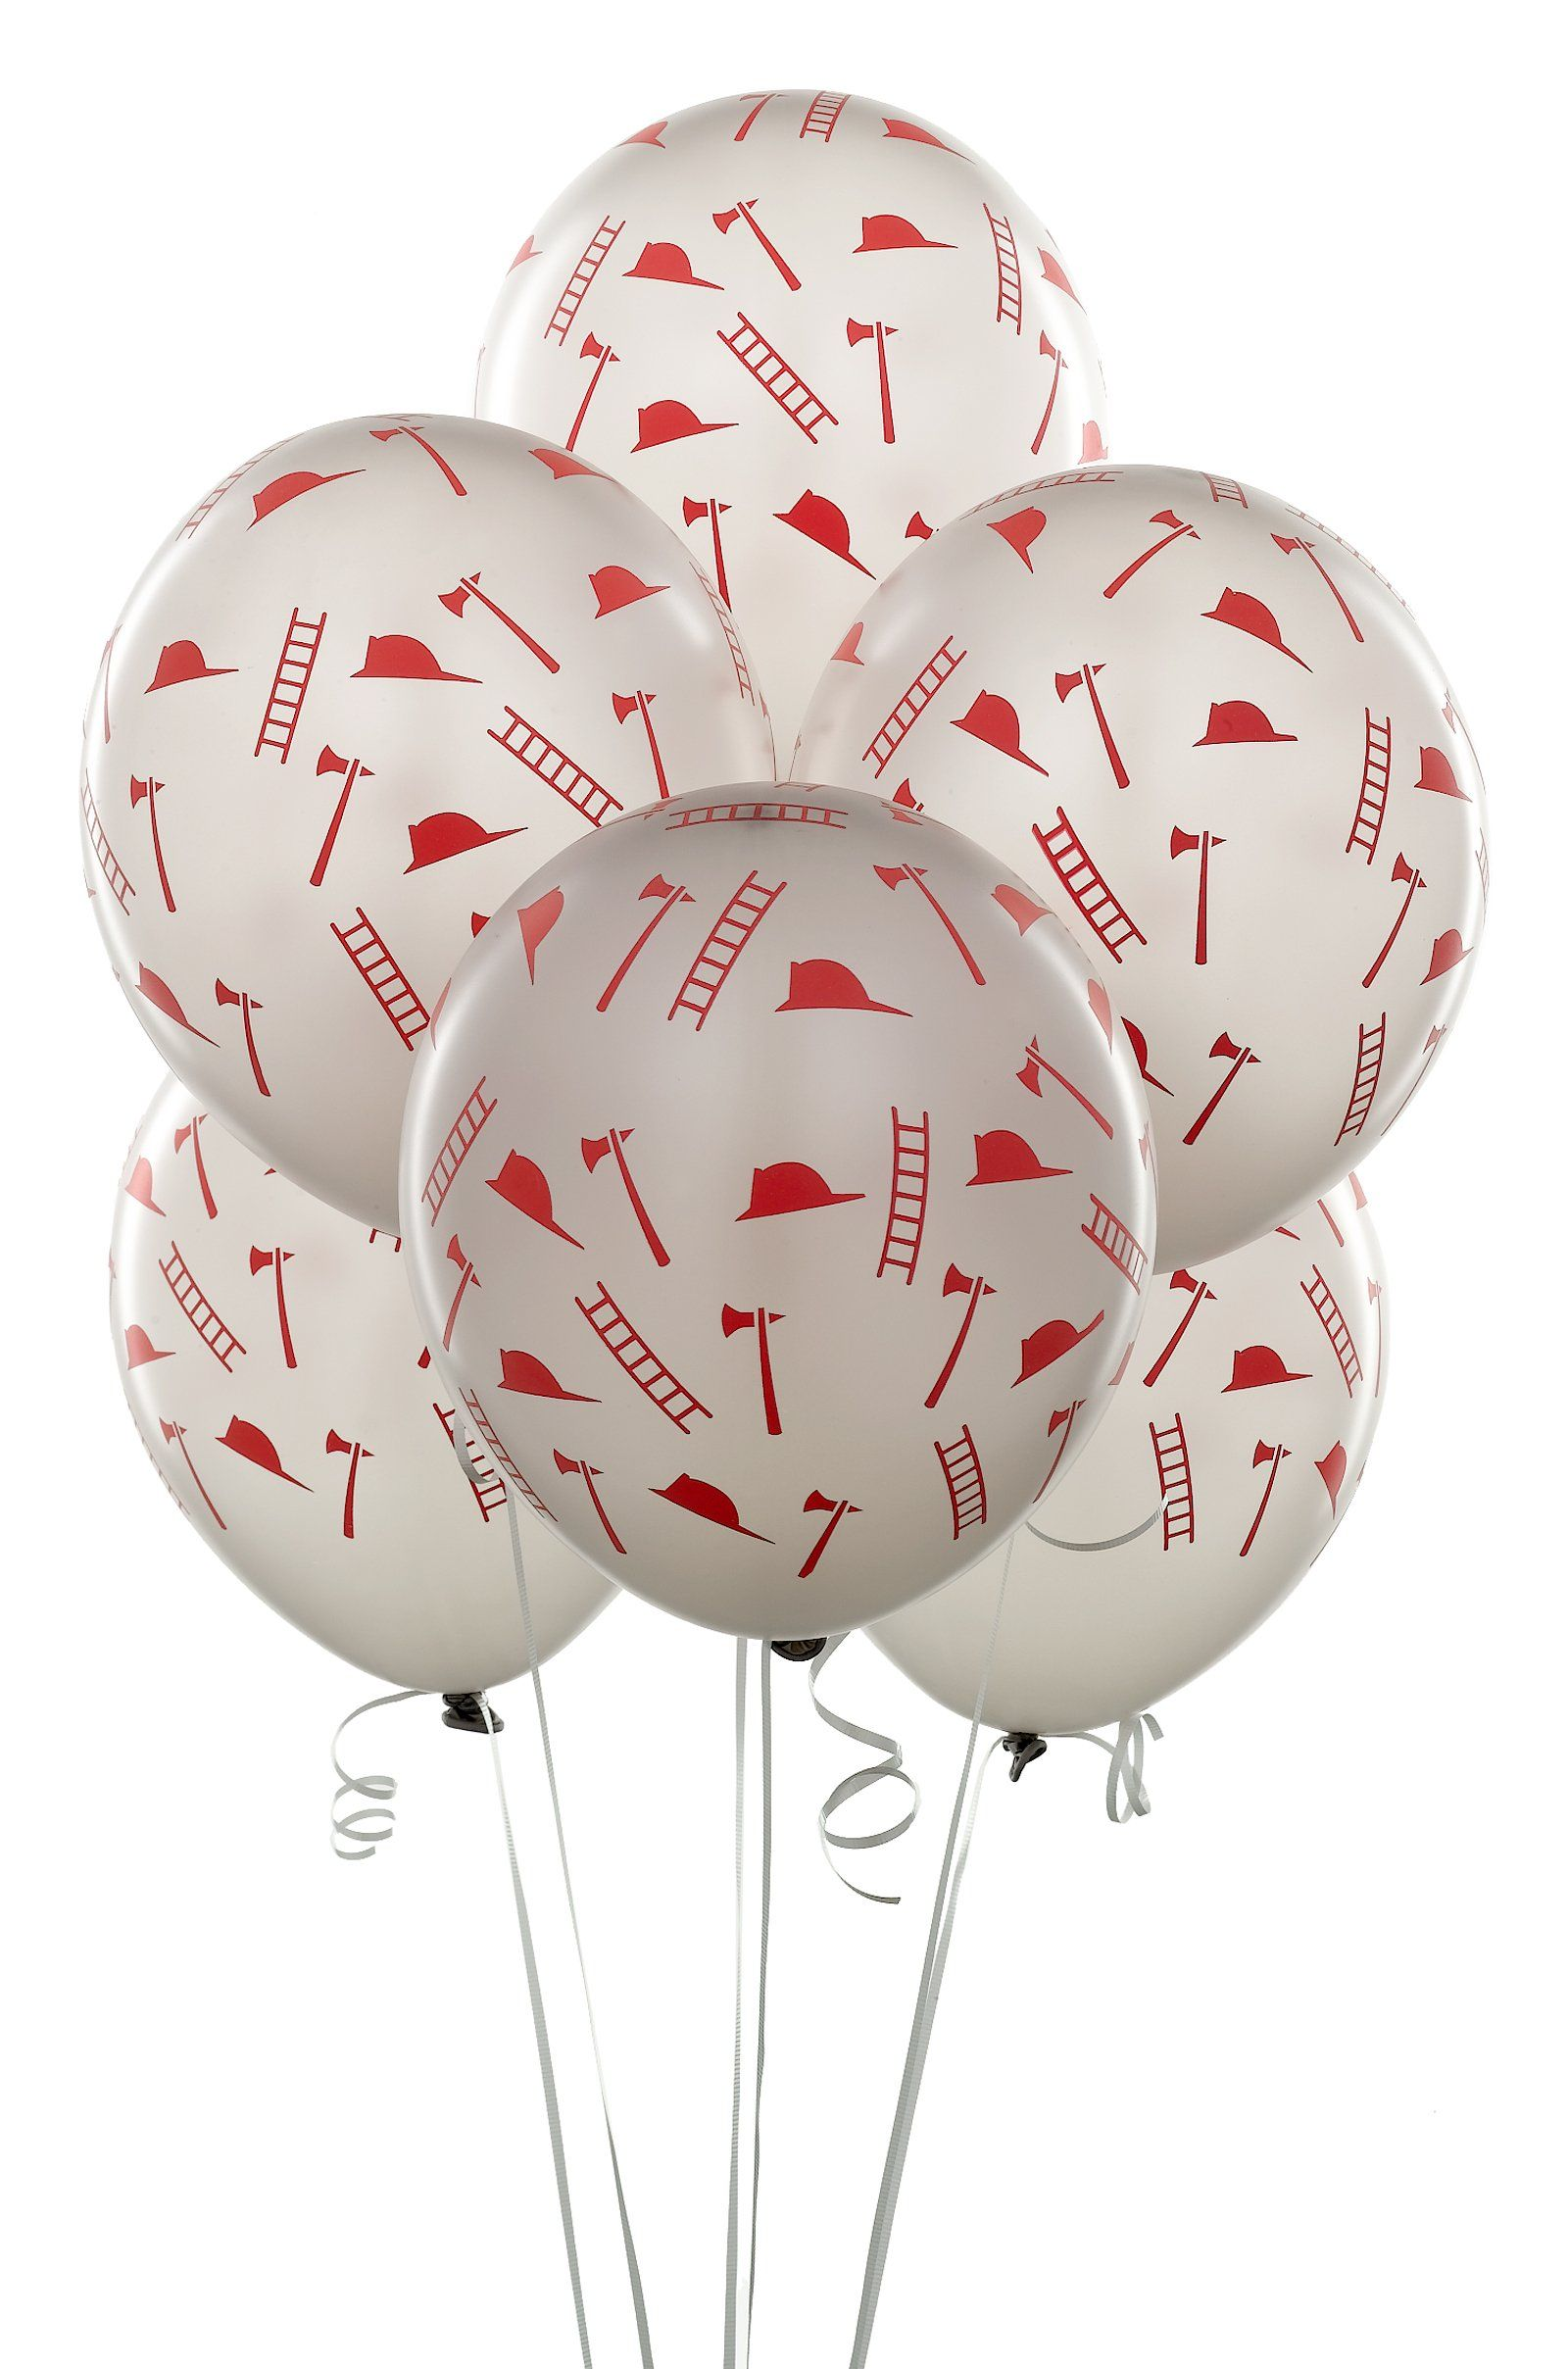 Silver Balloons With Red Firefighter Symbols Isaacs Birthday